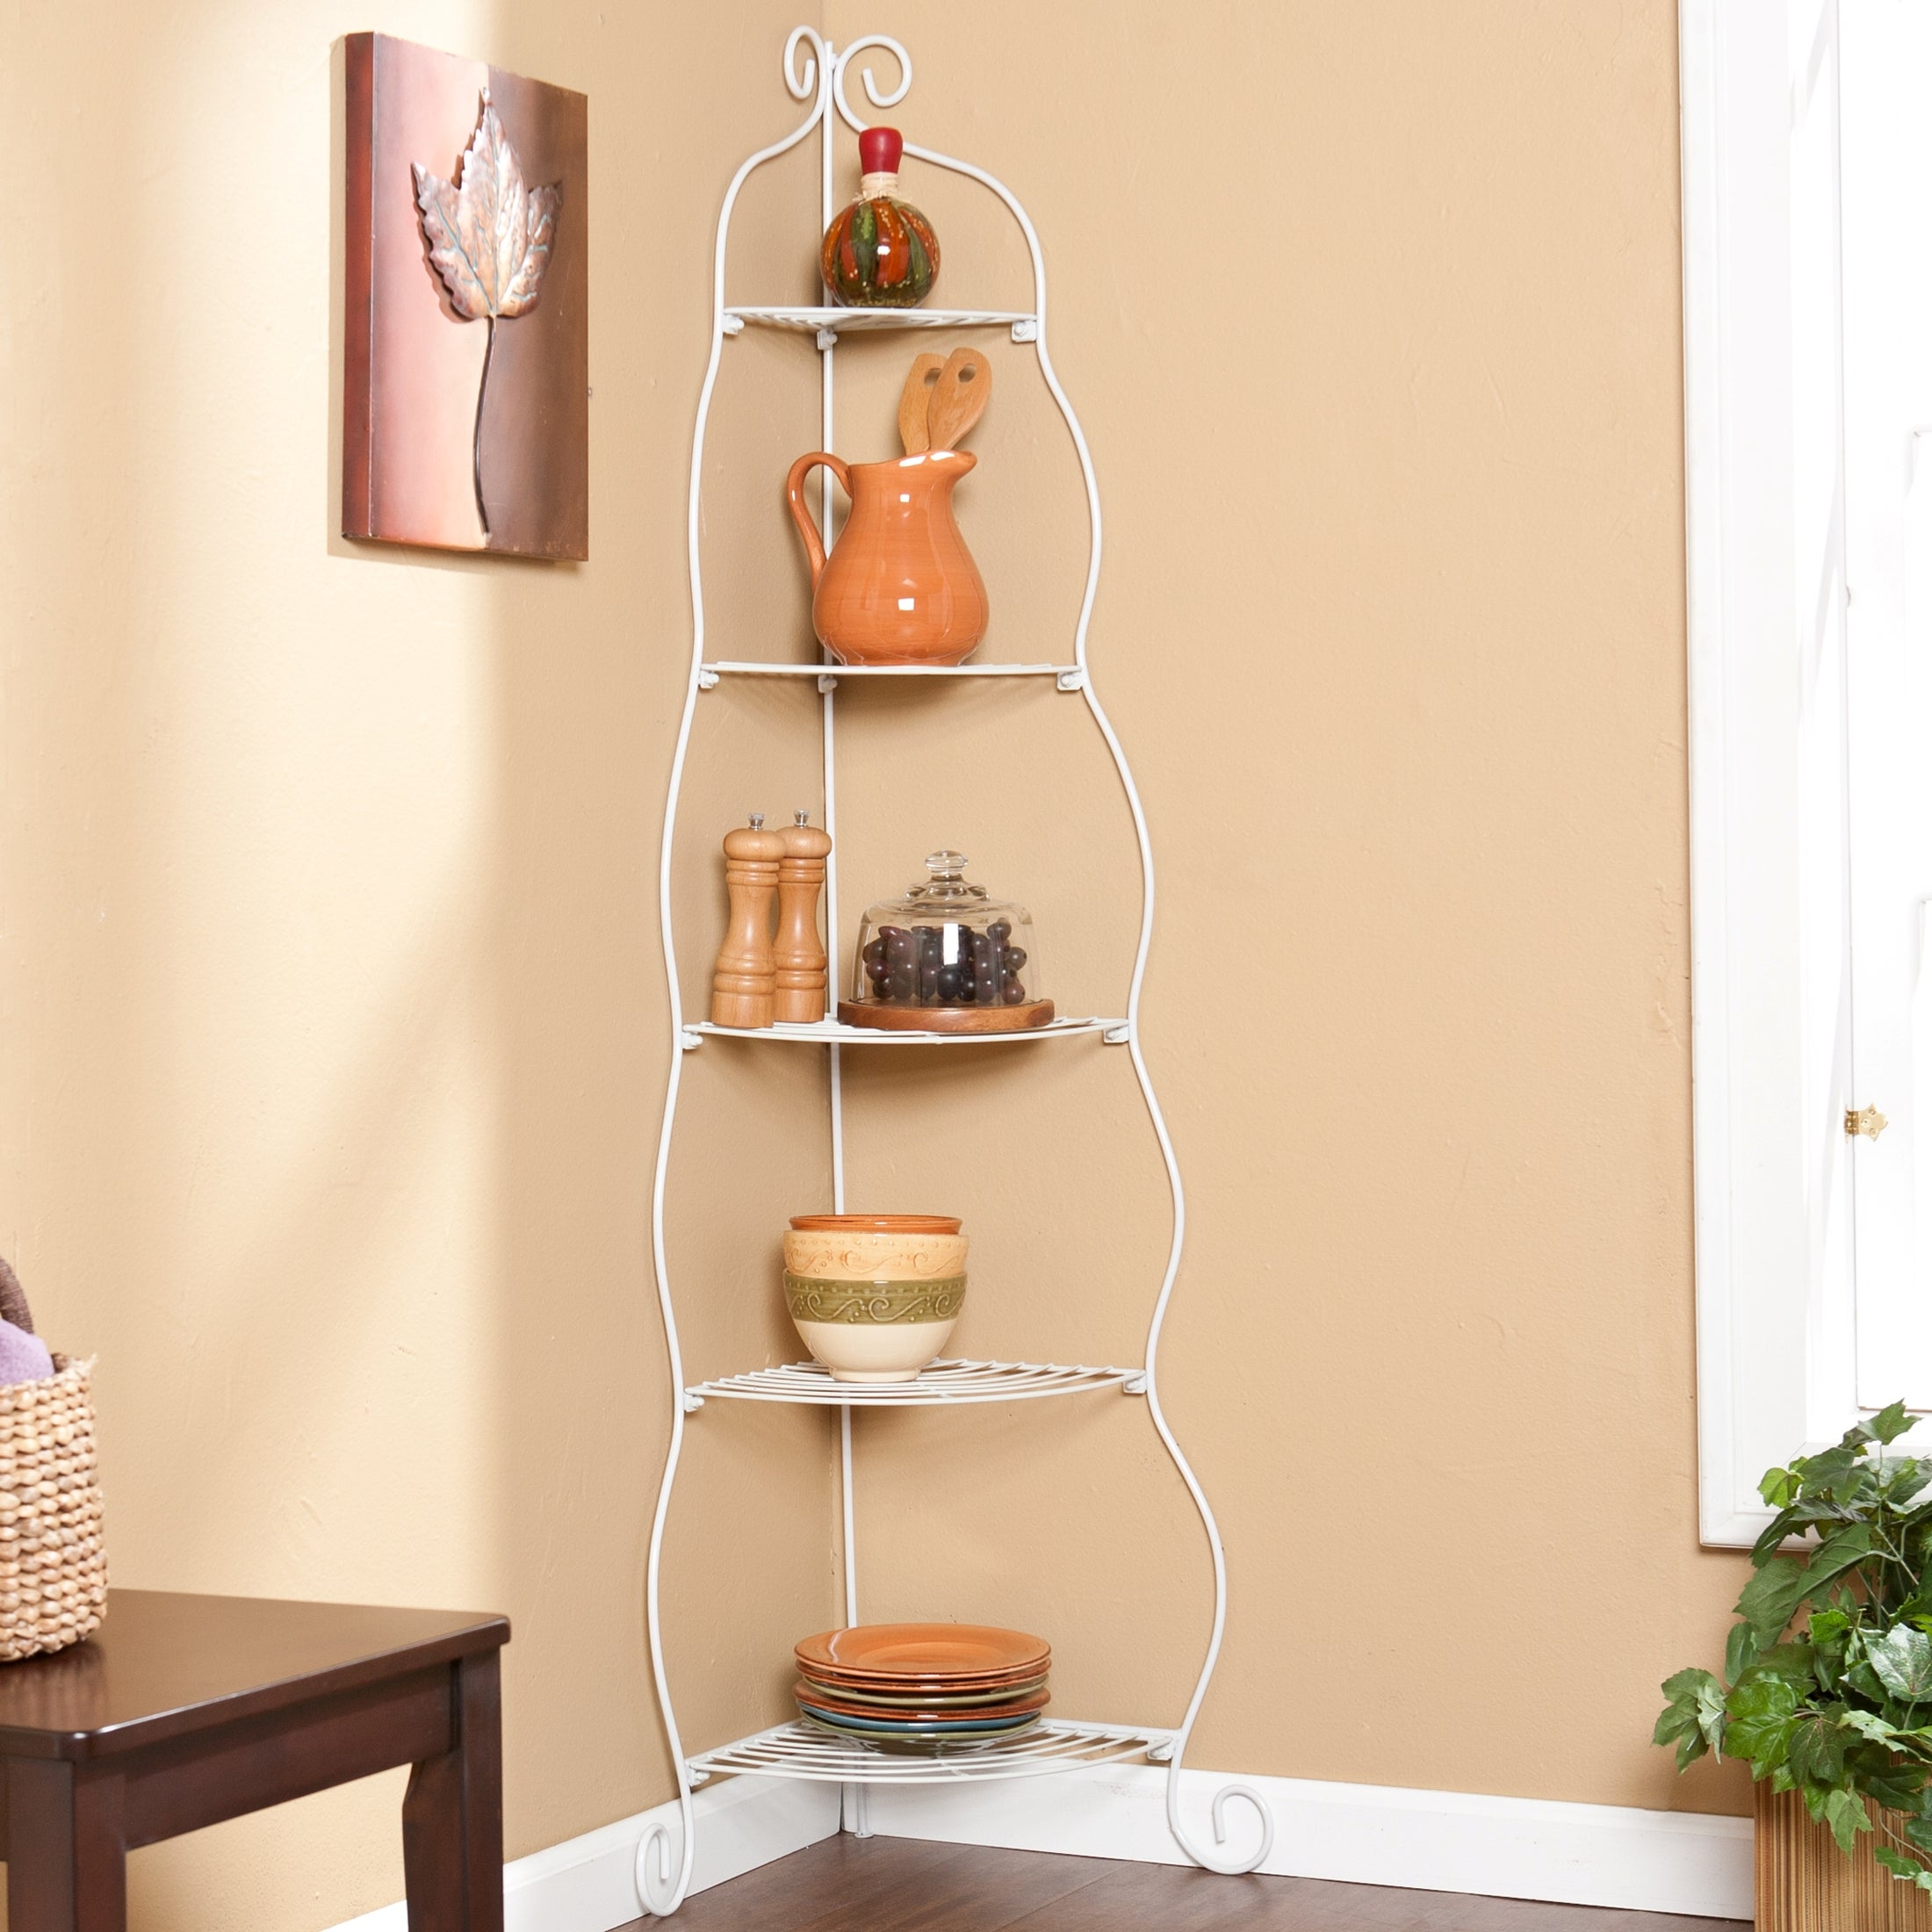 Upton Home Scrolled White 5-tier Corner Etagere